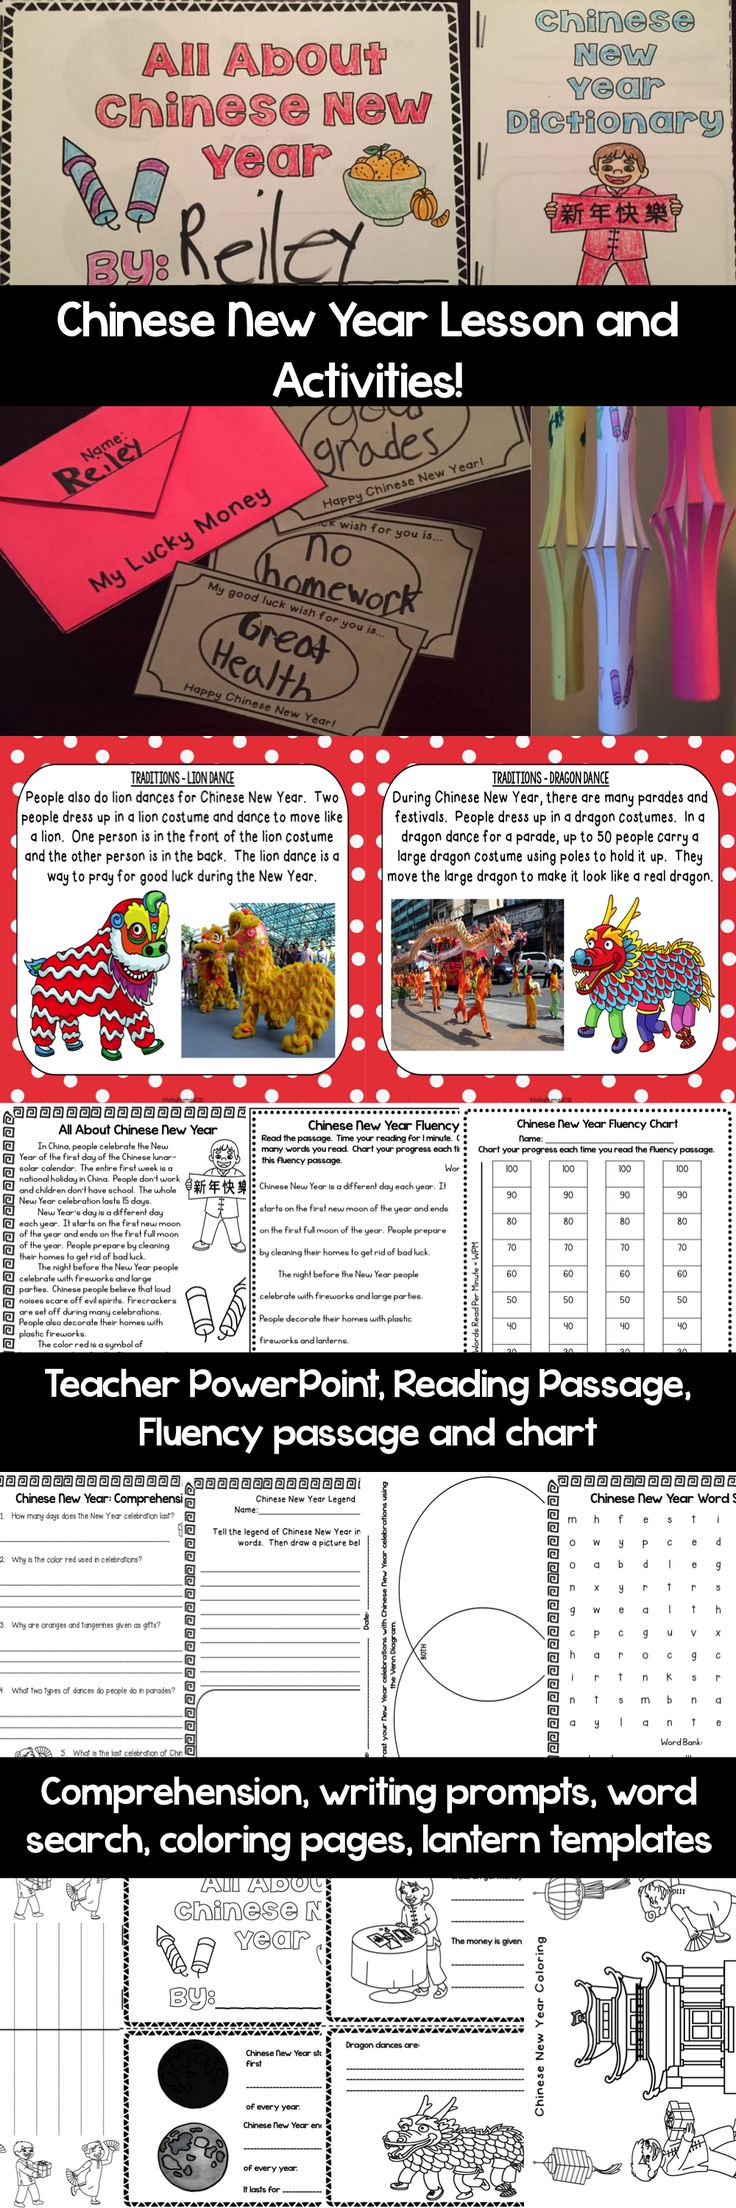 Celebrate Chinese New Year in the classroom with this complete unit and activities for primary grades!   Includes: A teacher PowerPoint Reading Passage Fluency Passage and Chart Comprehension Word Search Venn Diagram and Writing Prompts All About Chinese New Year Book Chinese New Year Dictionary Lucky Money Classroom Activity Lantern Templates with graphics Coloring Pages